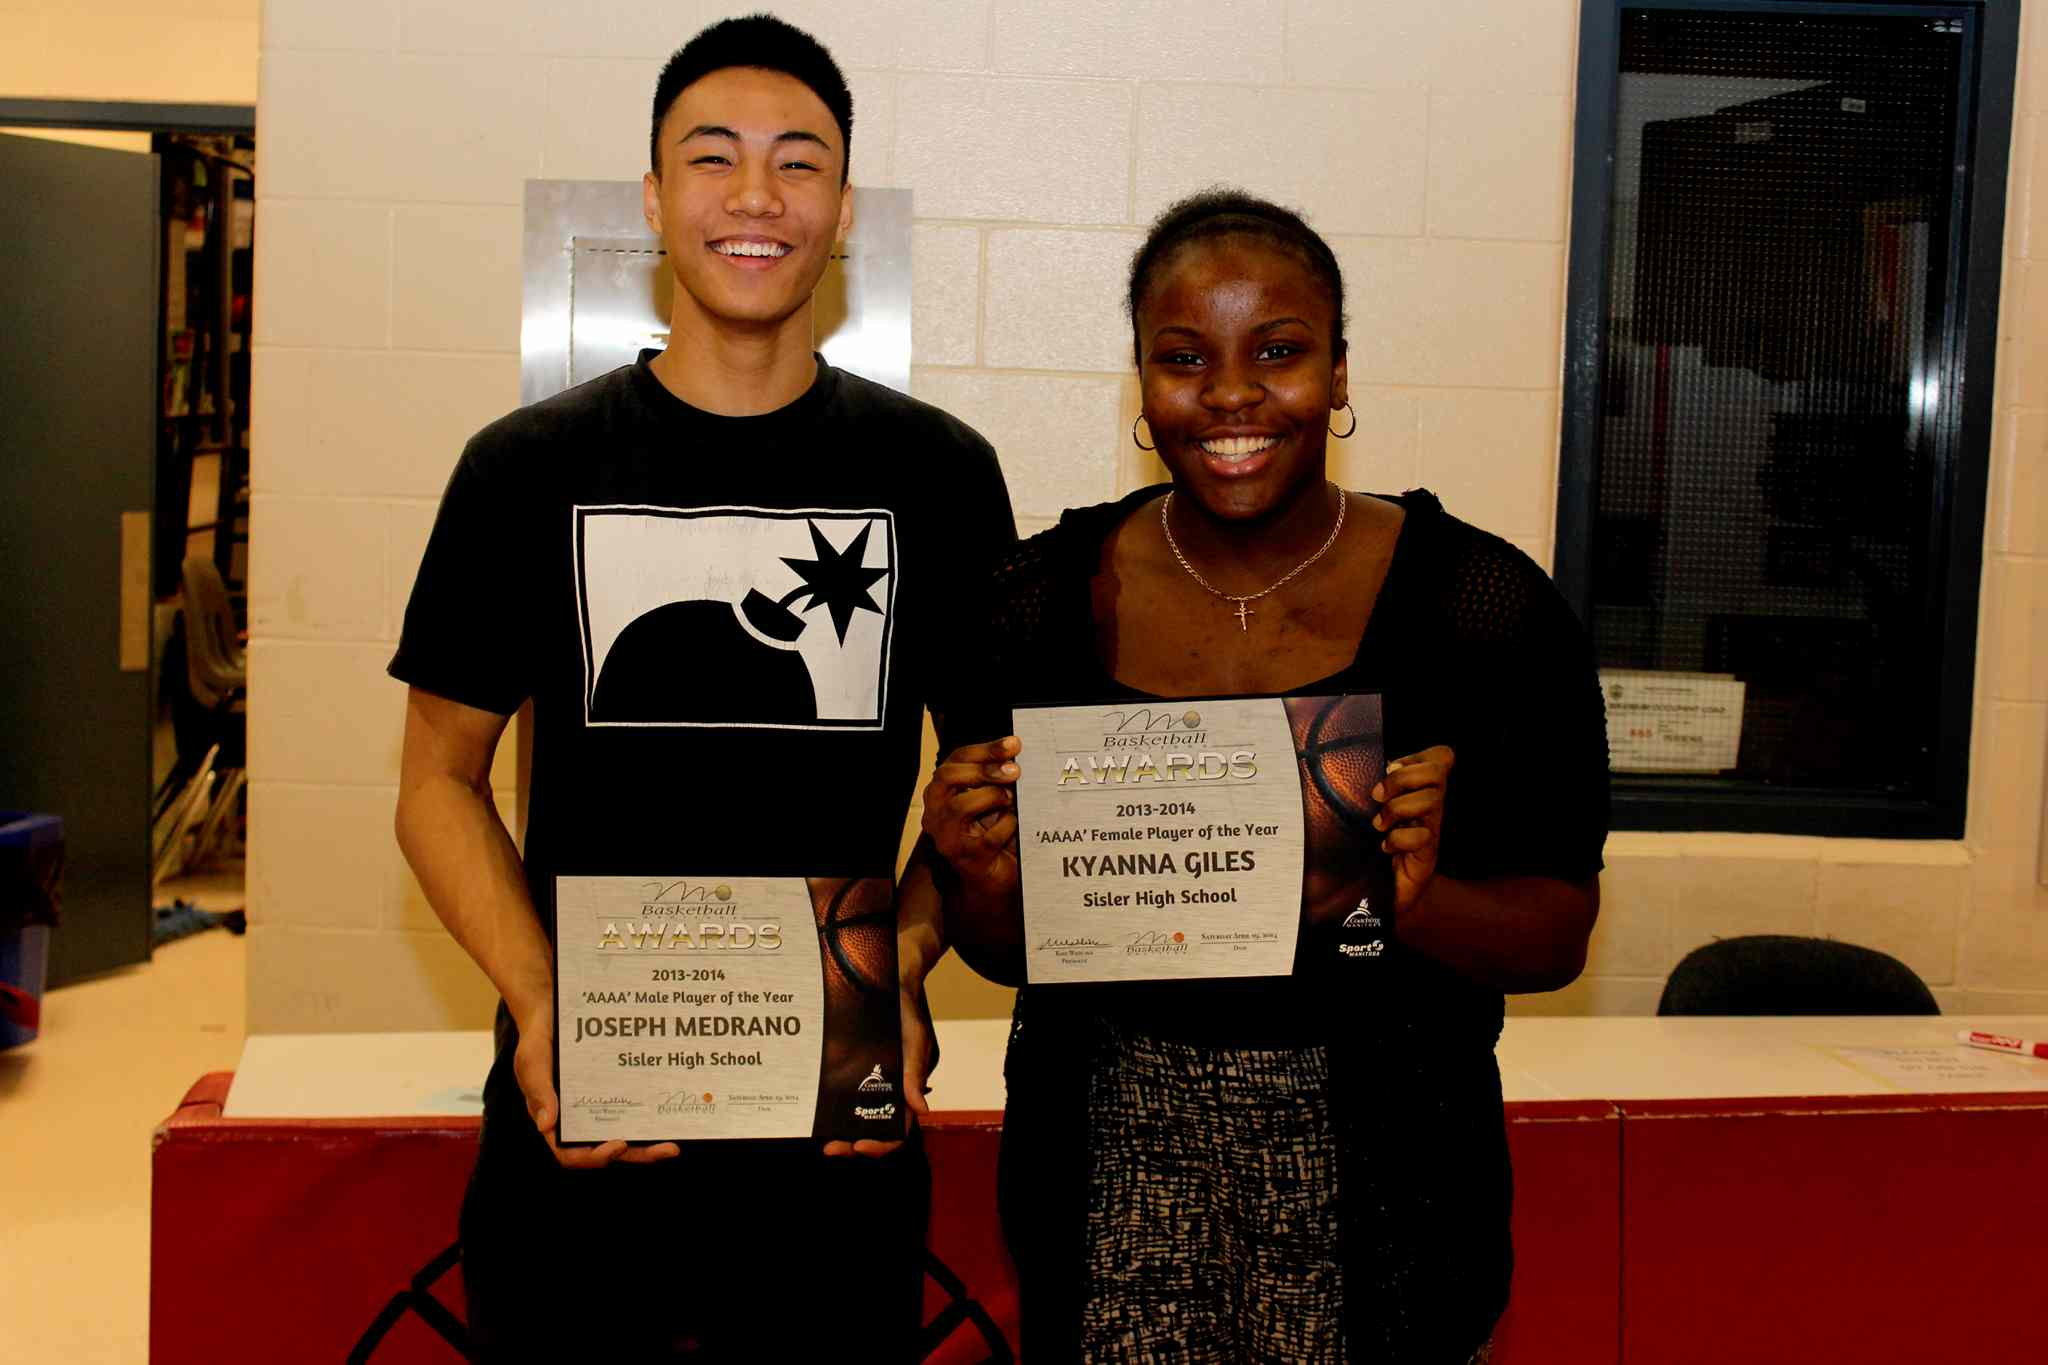 Joseph Medrano and Kyanna Giles were named AAAA players of the year by Basketball Manitoba.